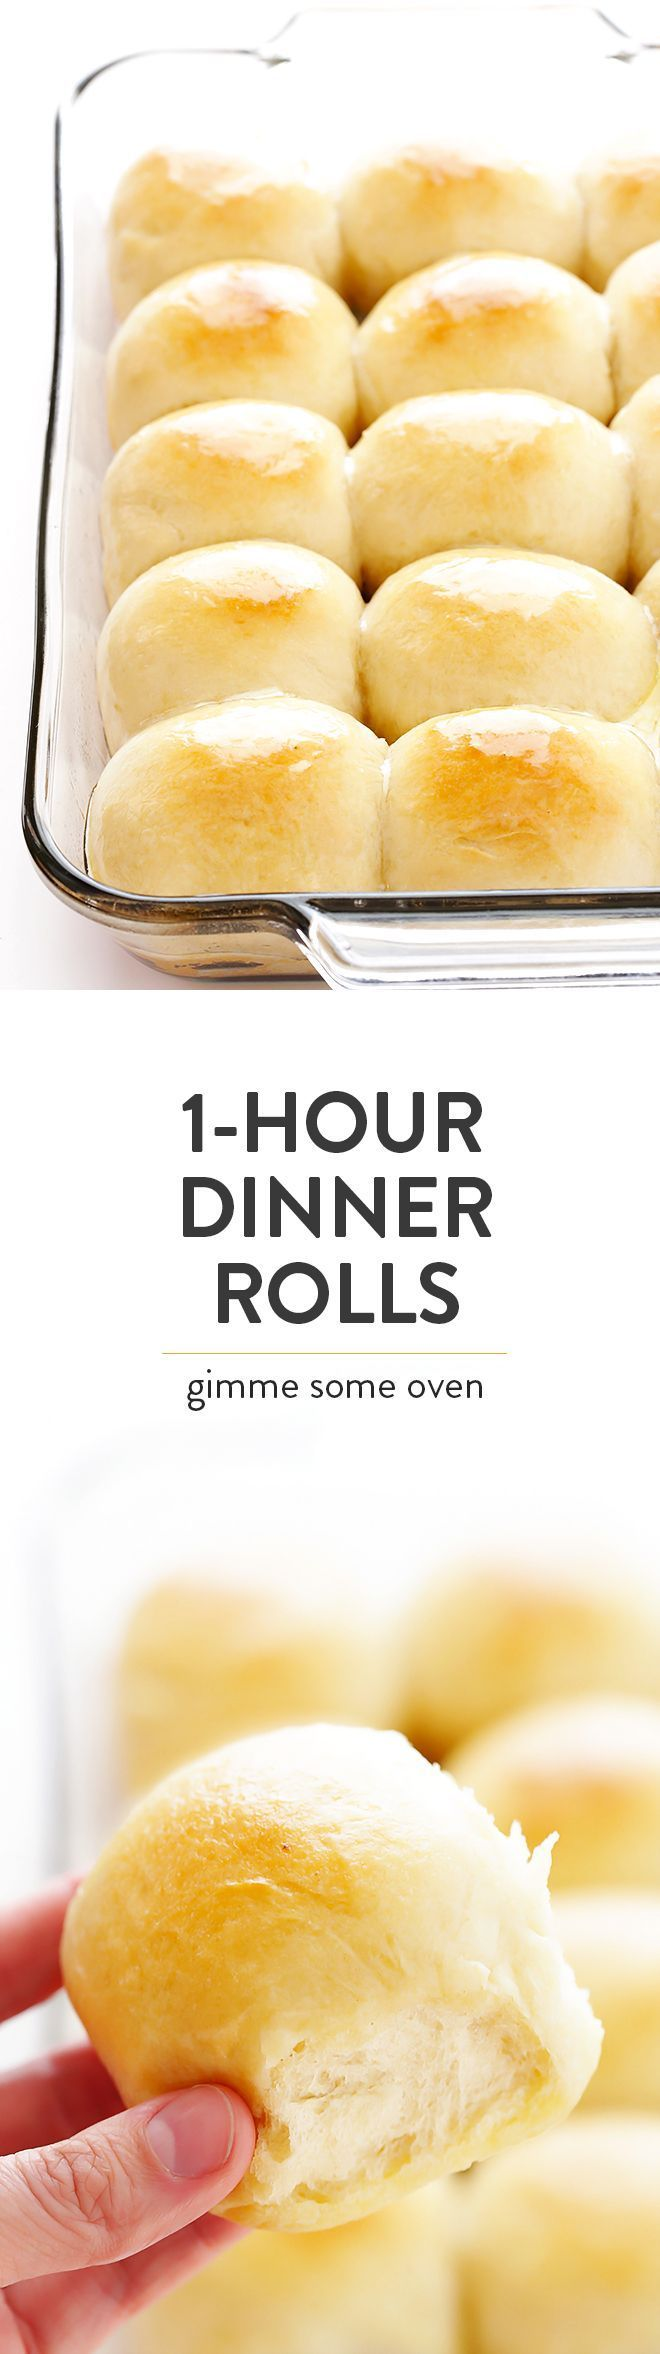 This 1-Hour Dinner Rolls recipe is the BEST! It's super-easy to make, and those soft and buttery rolls are irresistibly delicious!